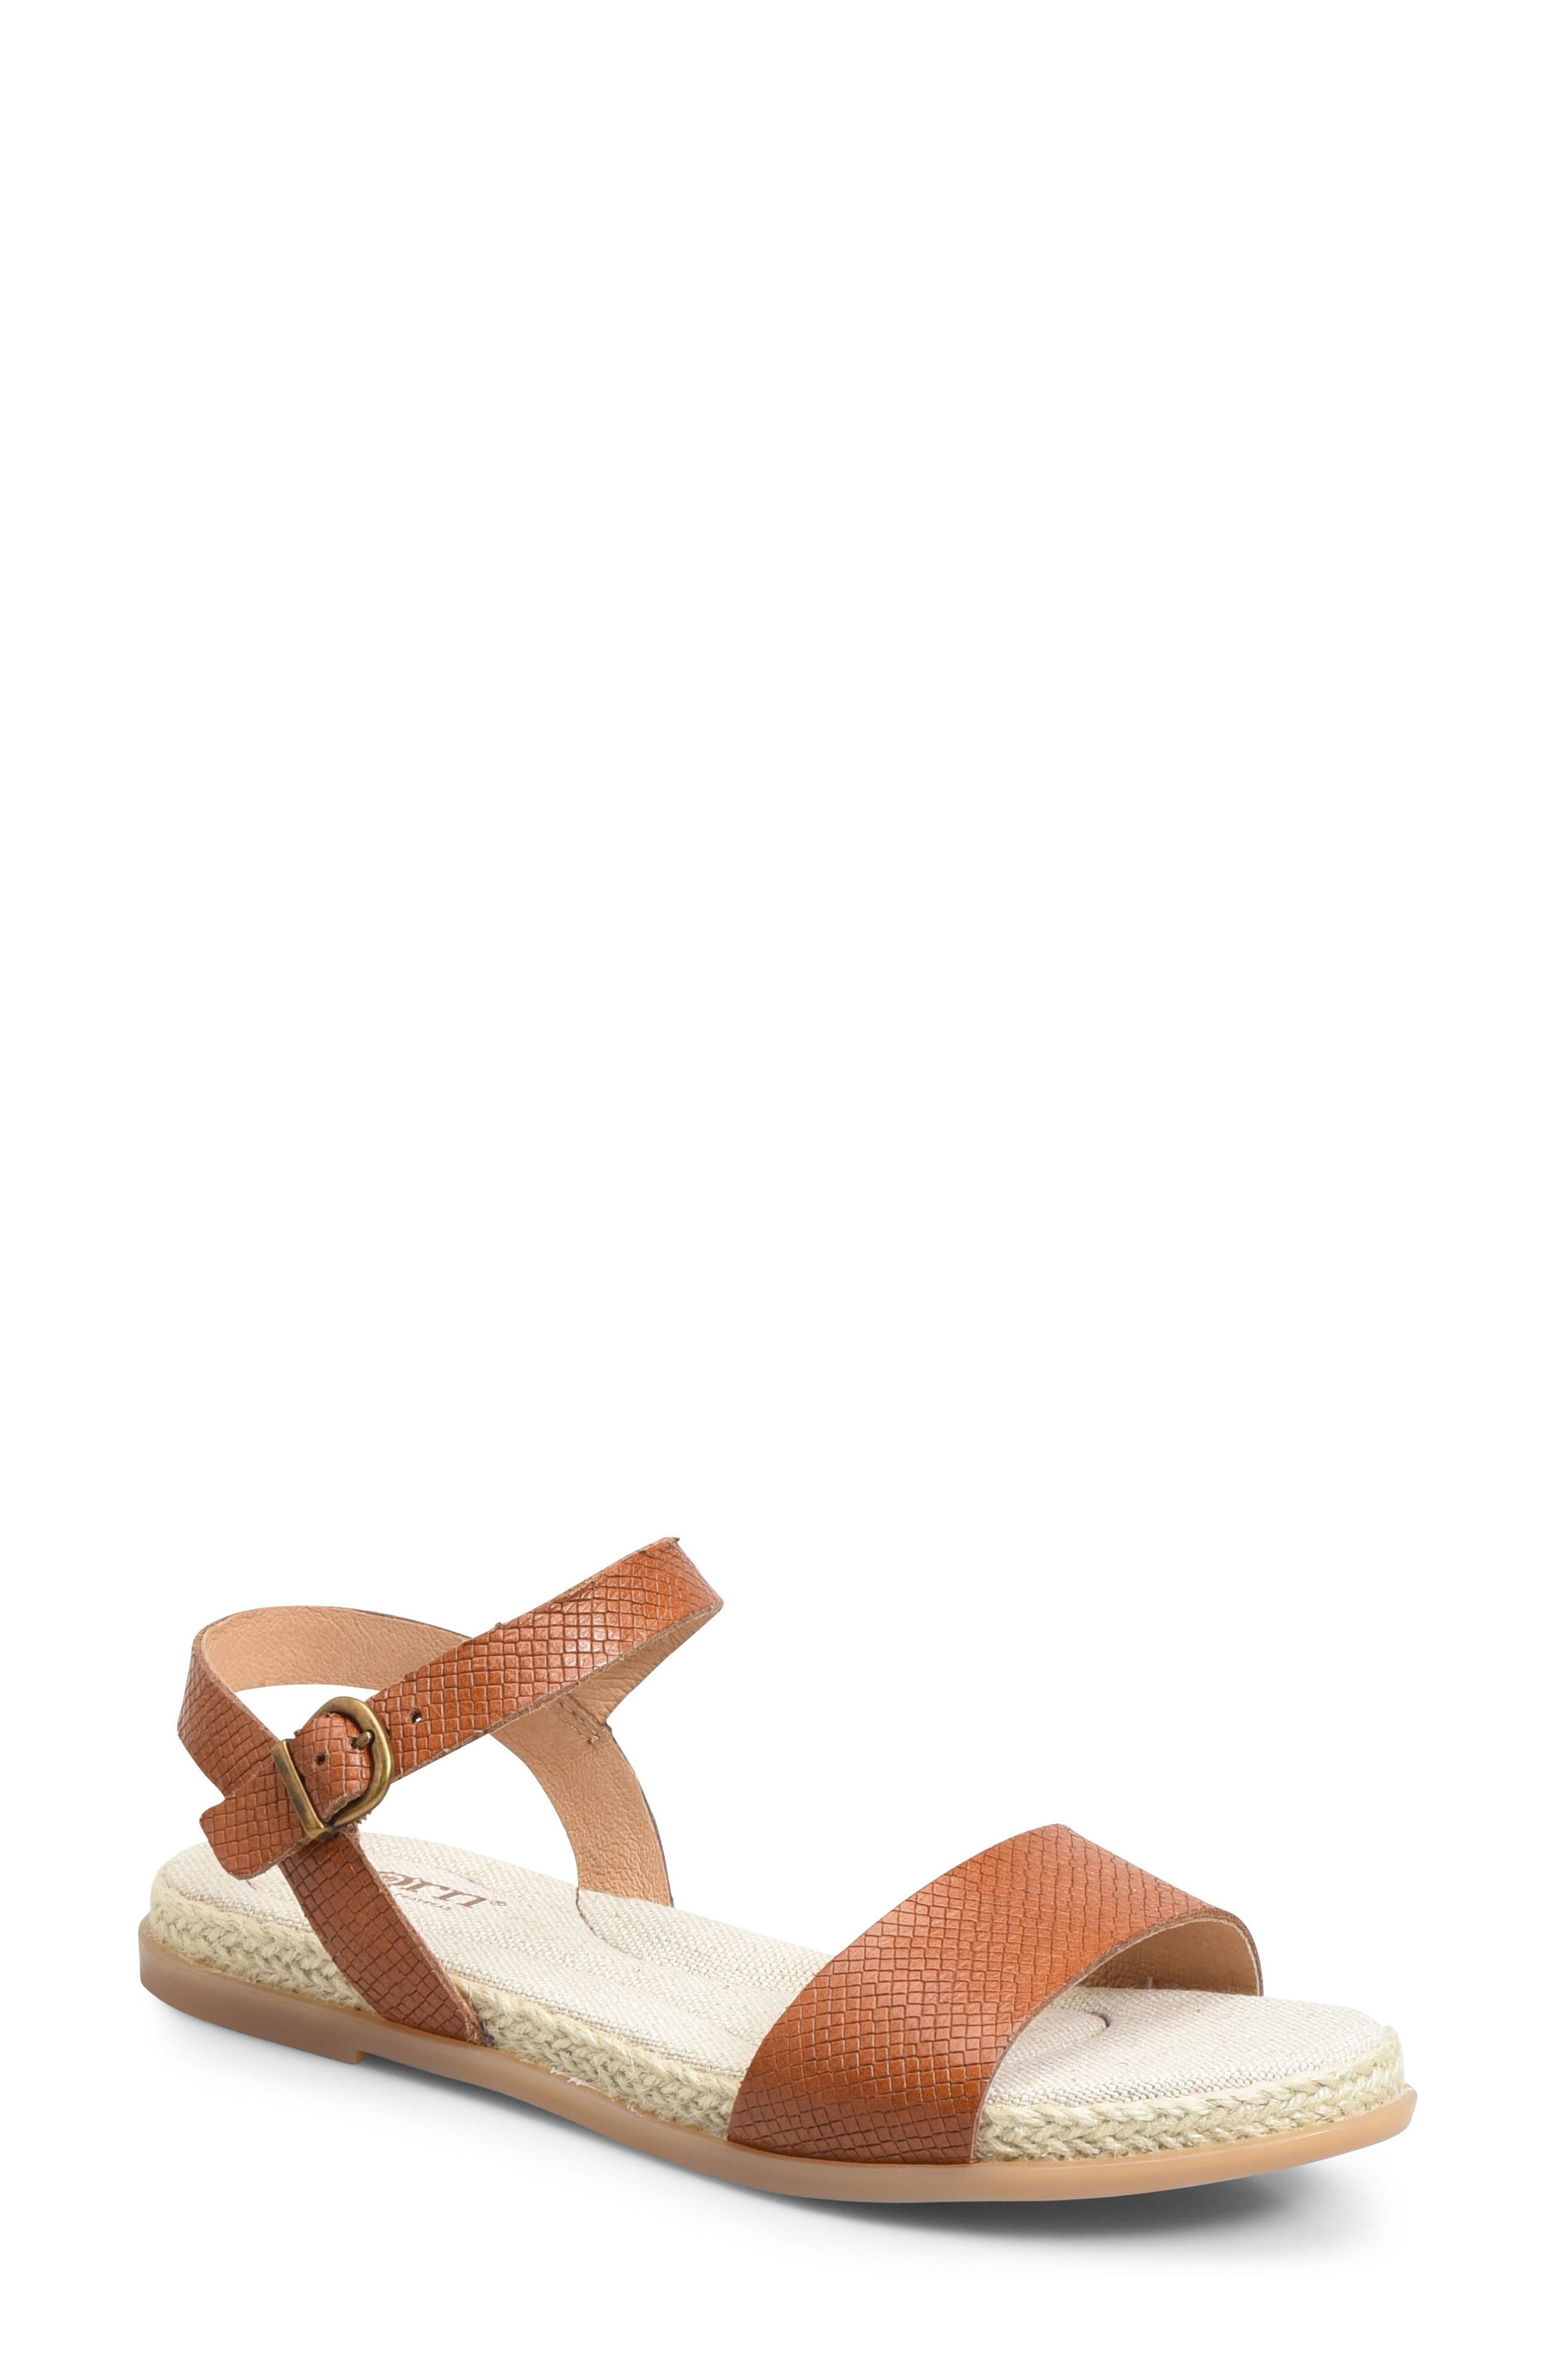 Welch Sandal,                         Main,                         color, Brown Leather